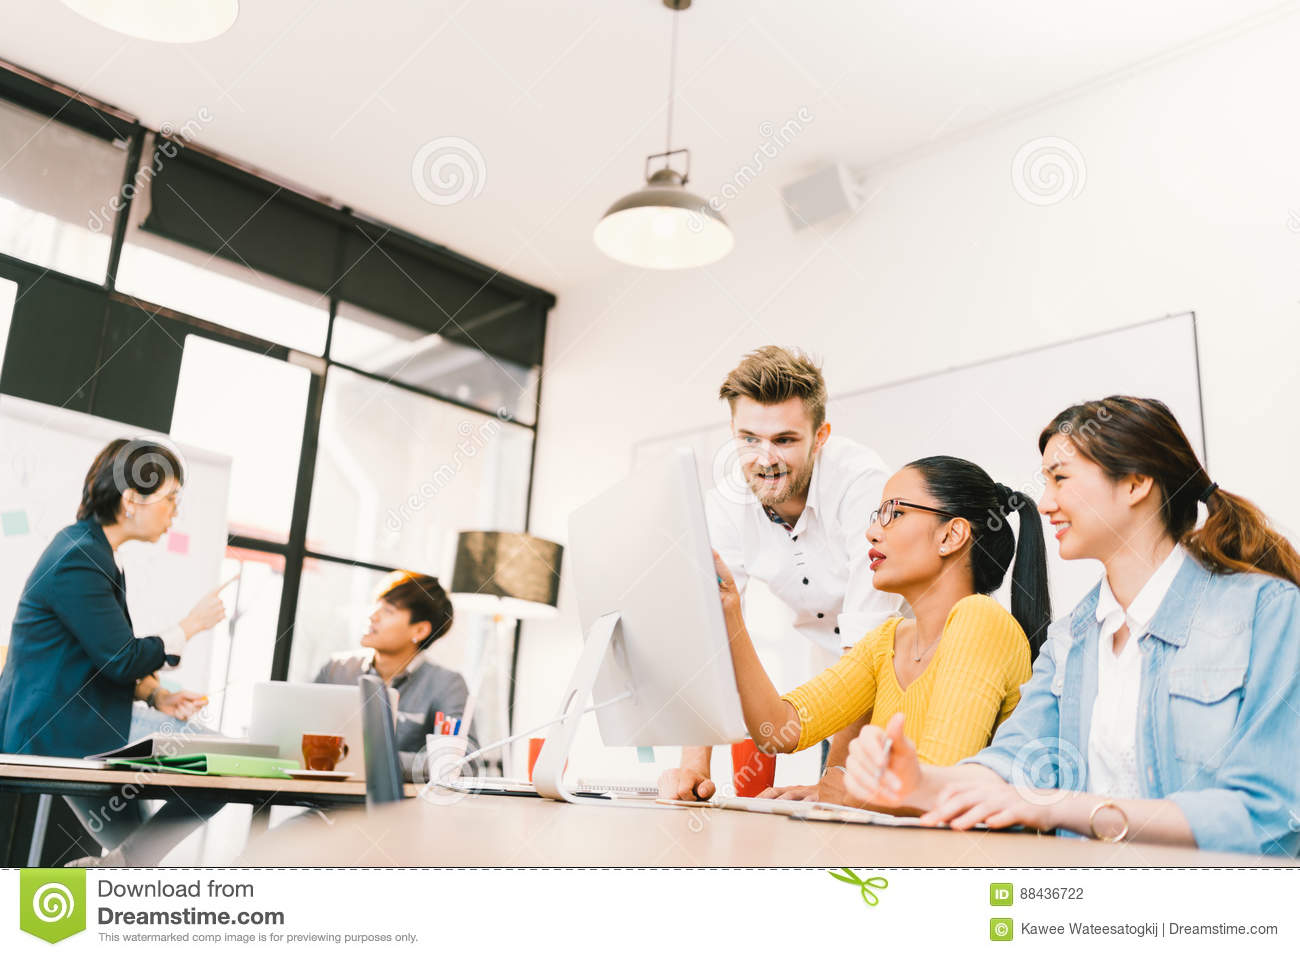 Multiethnic diverse group of people at work. Creative team, casual business coworker, or college students in brainstorm meeting